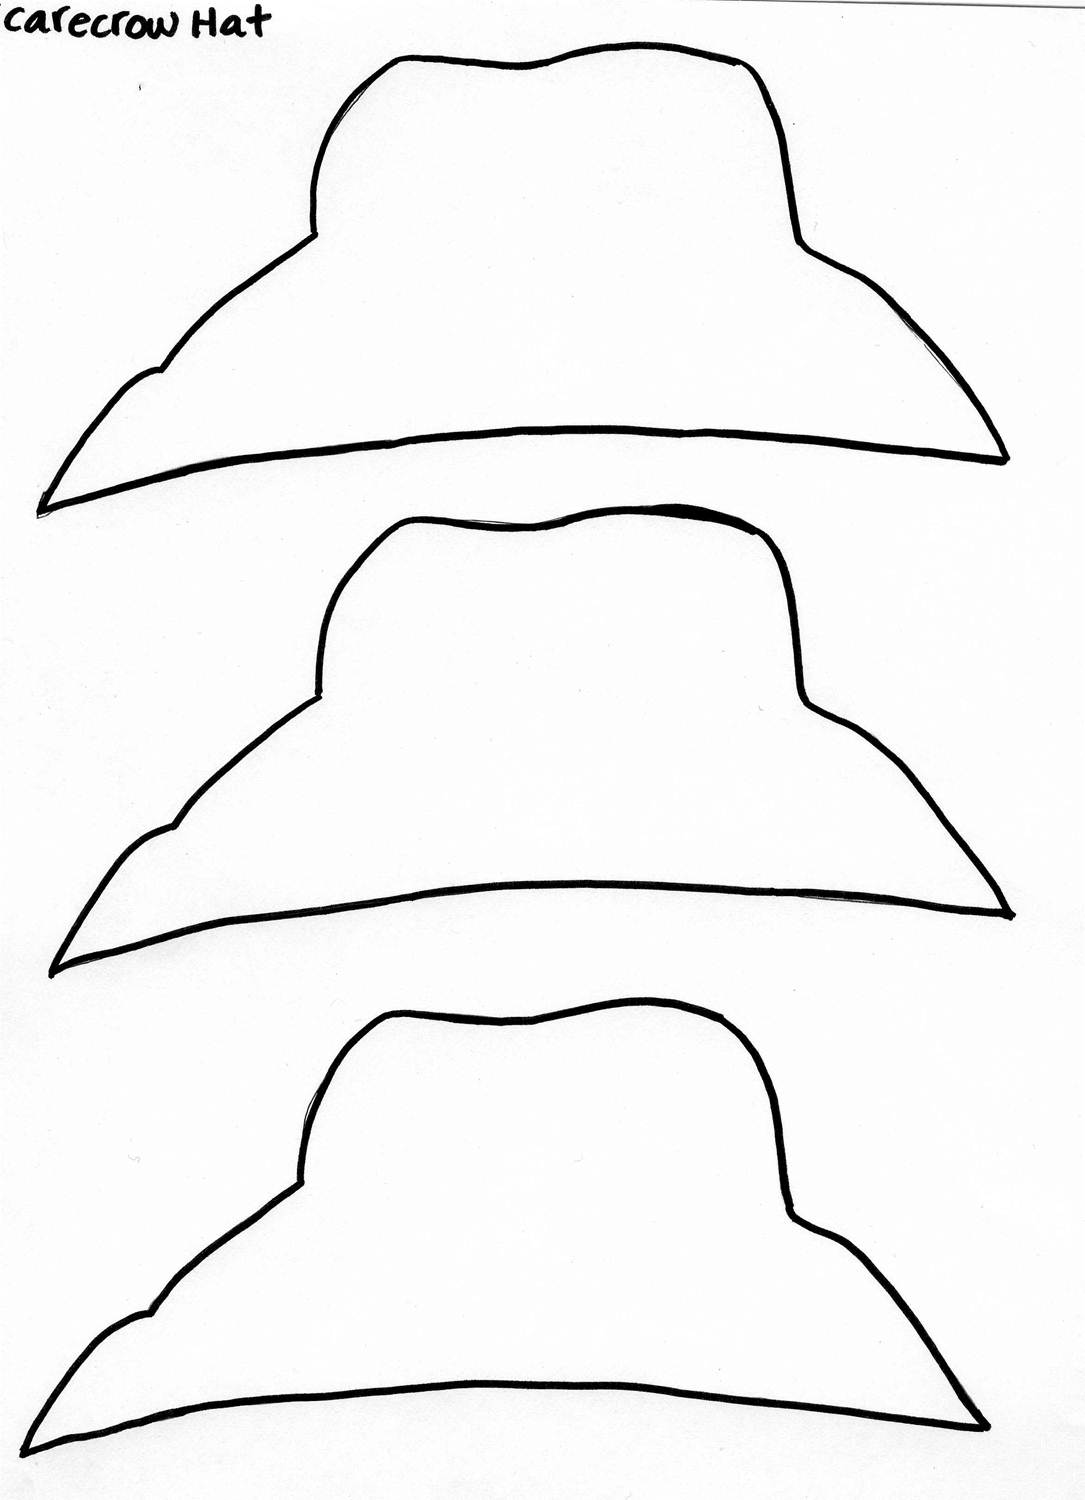 Witch Face Pumpkin Stencil in addition Pumpkin Faces likewise Fruit eyes moreover 2011 10 01 archive moreover Post free Printable Scarecrow Worksheets 55613. on scarecrow faces or patterns